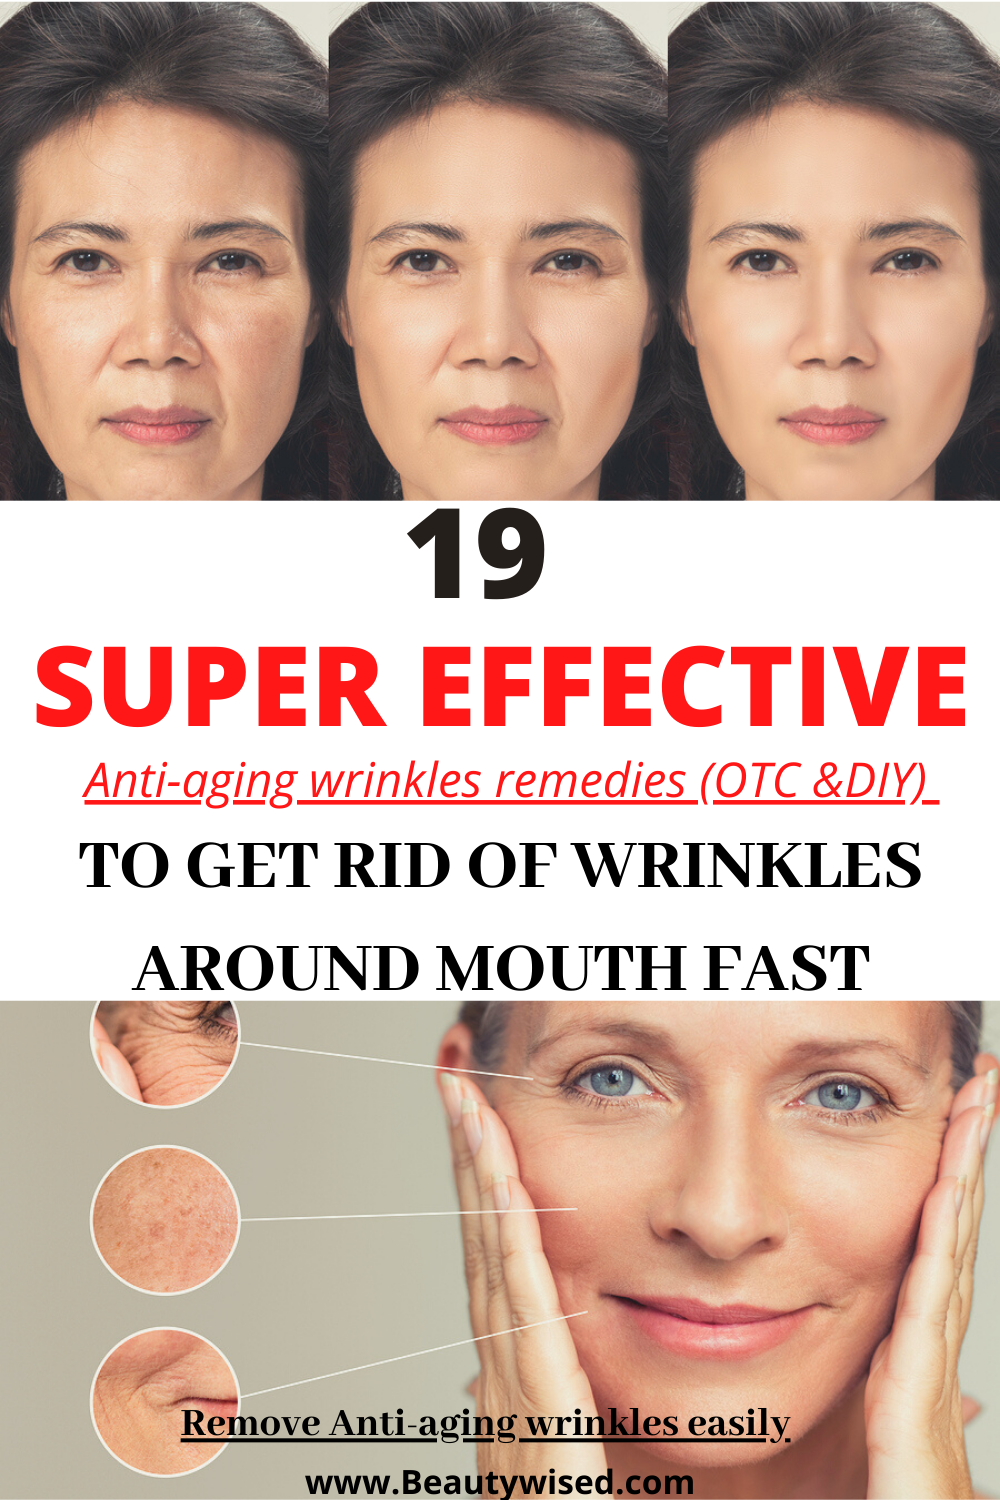 Looking For Some Proven Anti Aging Skin Care Tips To Get Rid Of Wrinkles Around Your Mouth Around Your Face To Reve In 2020 Facial Wrinkles Wrinkles Forehead Wrinkles